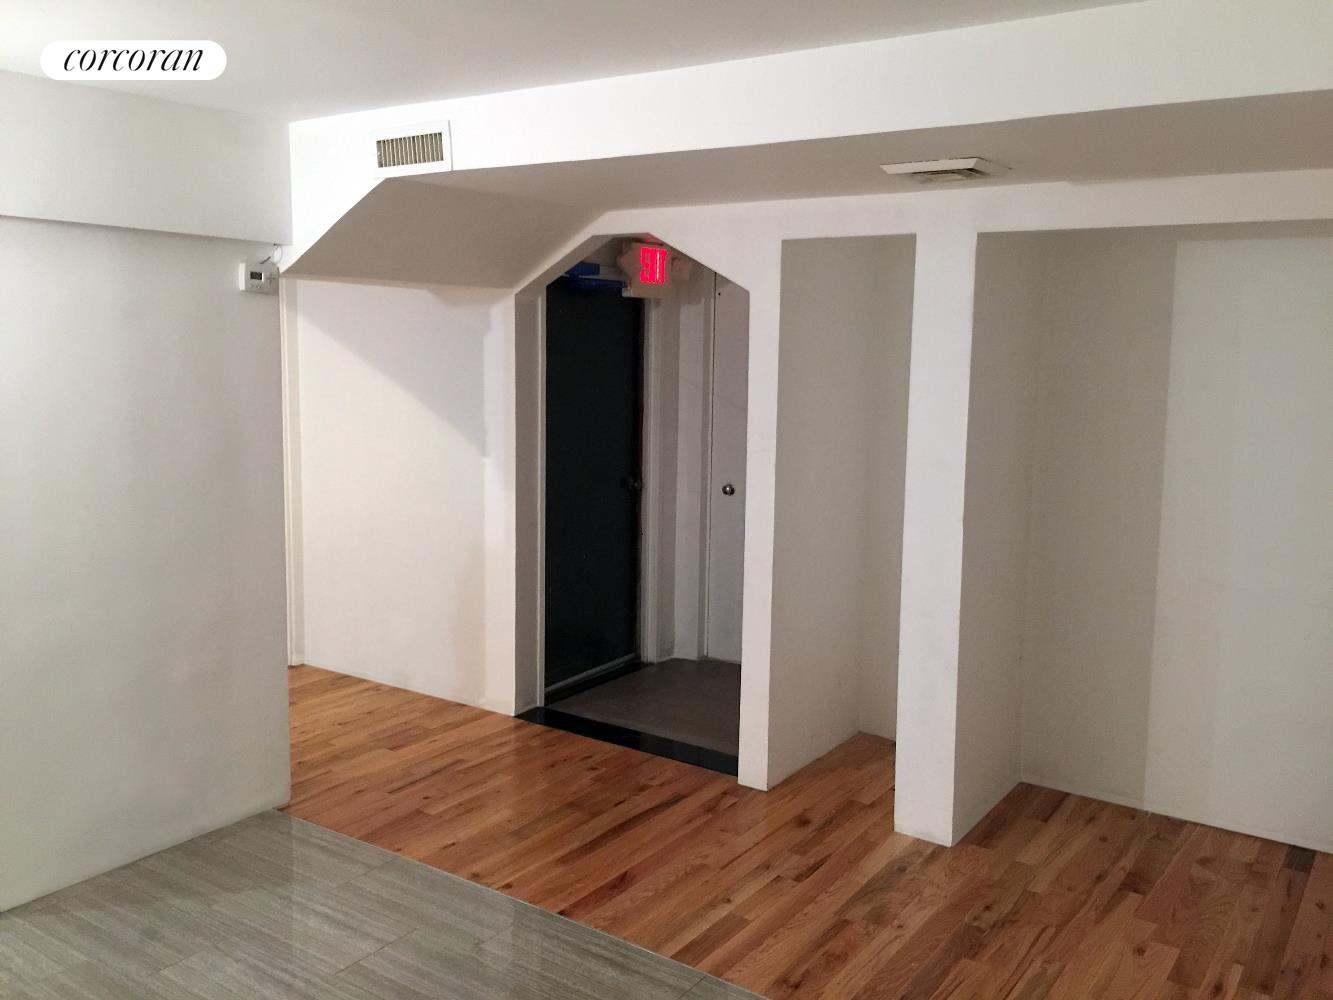 926 Second Avenue, 2nd Floor, Entry Area/Reception